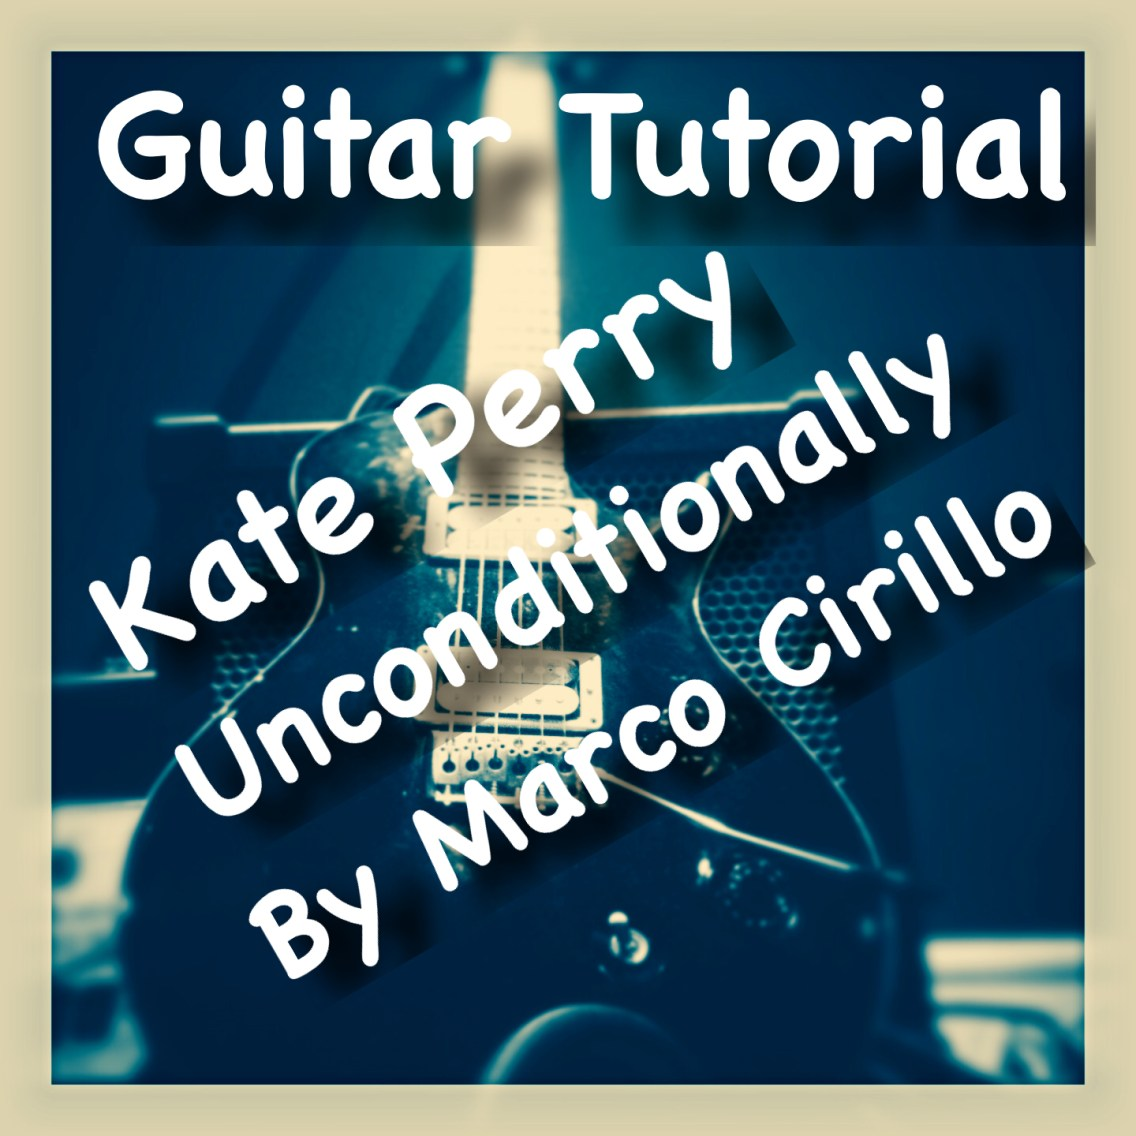 Kate Perry Unconditionally Guitar Lesson Chords and Tab PDF- Free Oline Guitar Lesson - Learn Guitar in London - Marco Cirillo Guitar Lesson North West London -